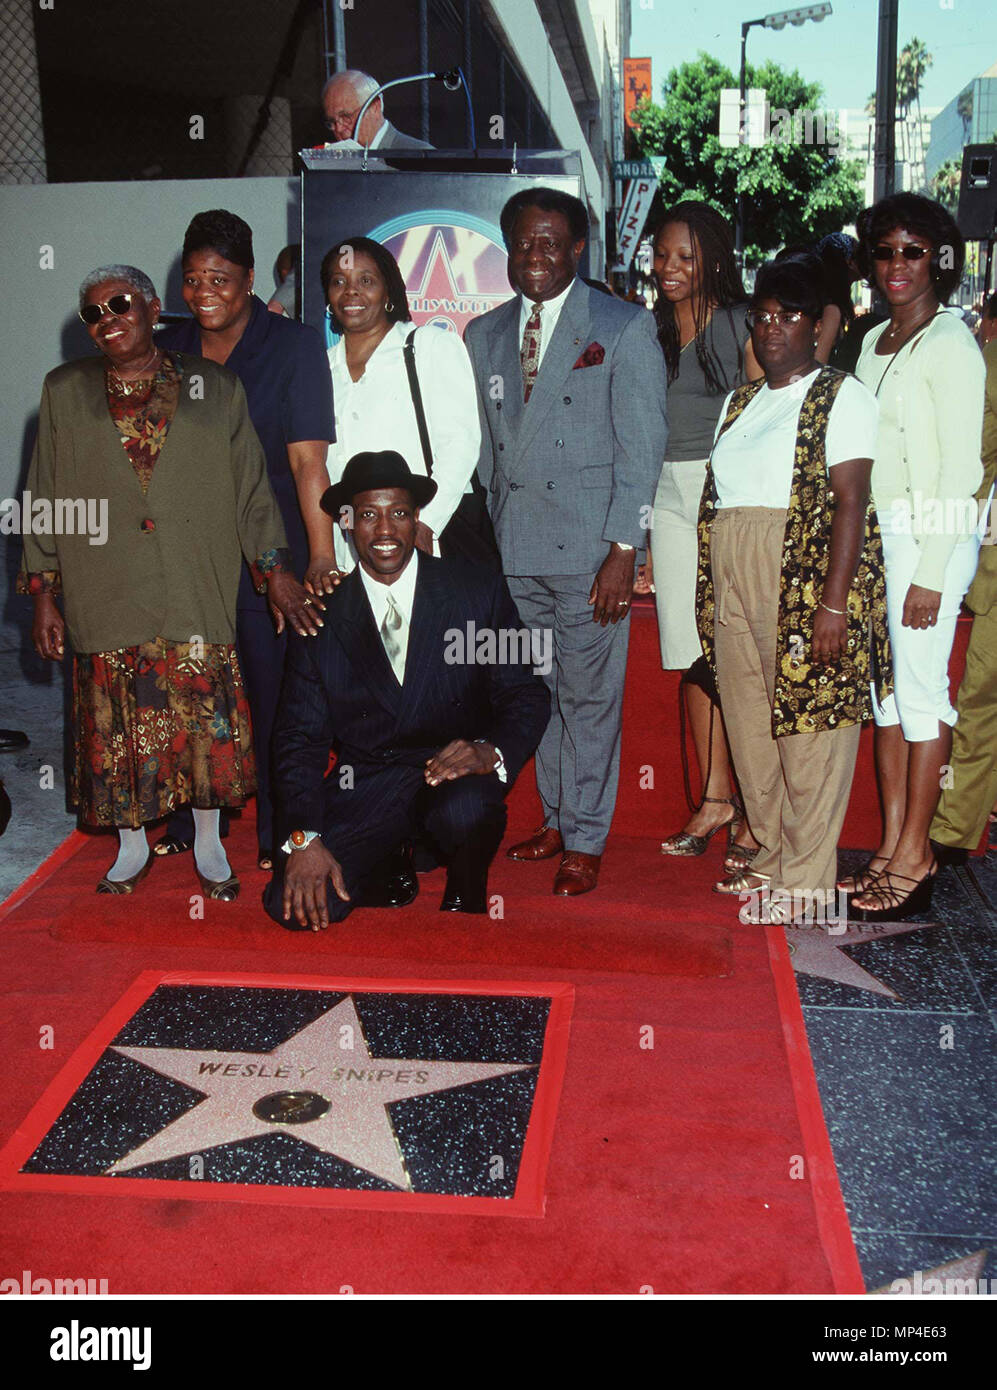 Snipes Wesley And Familysnipes Wesley Family Event In Hollywood Life California Red Carpet Event Usa Film Industry Celebrities Photography Bestof Arts Culture And Entertainment Topix Celebrities Fashion Best Of Hollywood